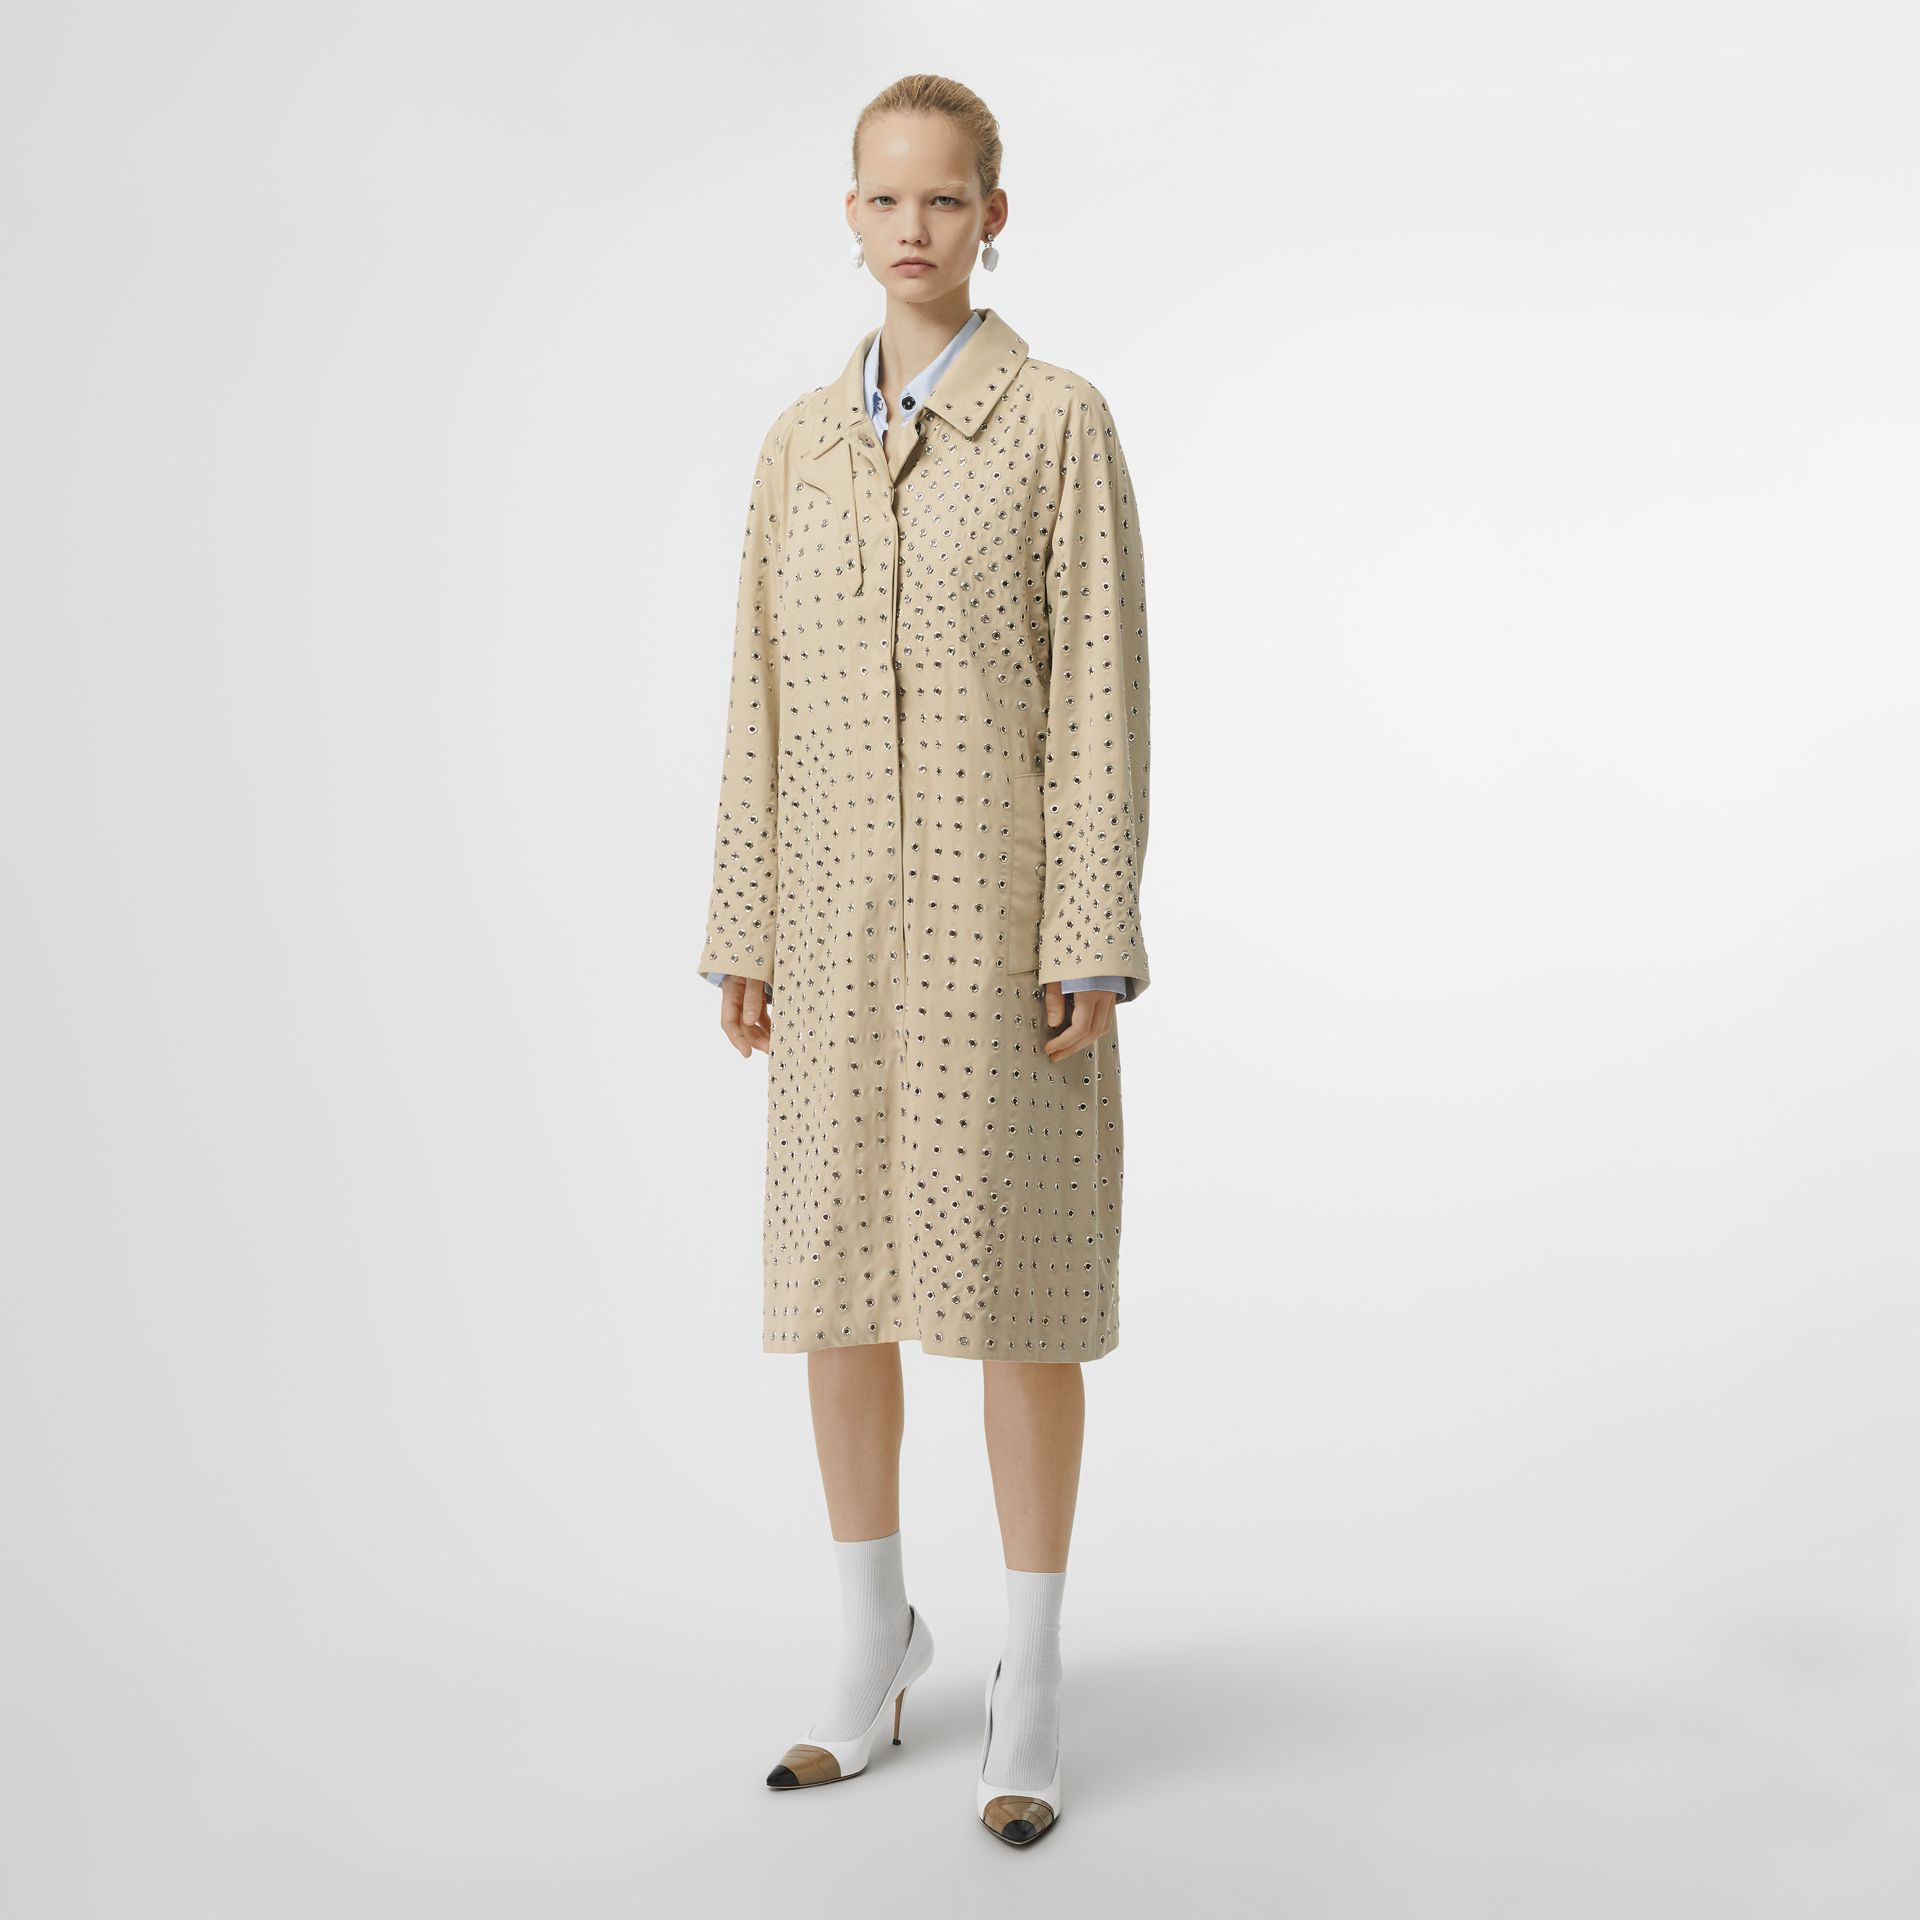 Eyelet Detail Cotton Car Coat in Light Beige - Women | Burberry - gallery image 5